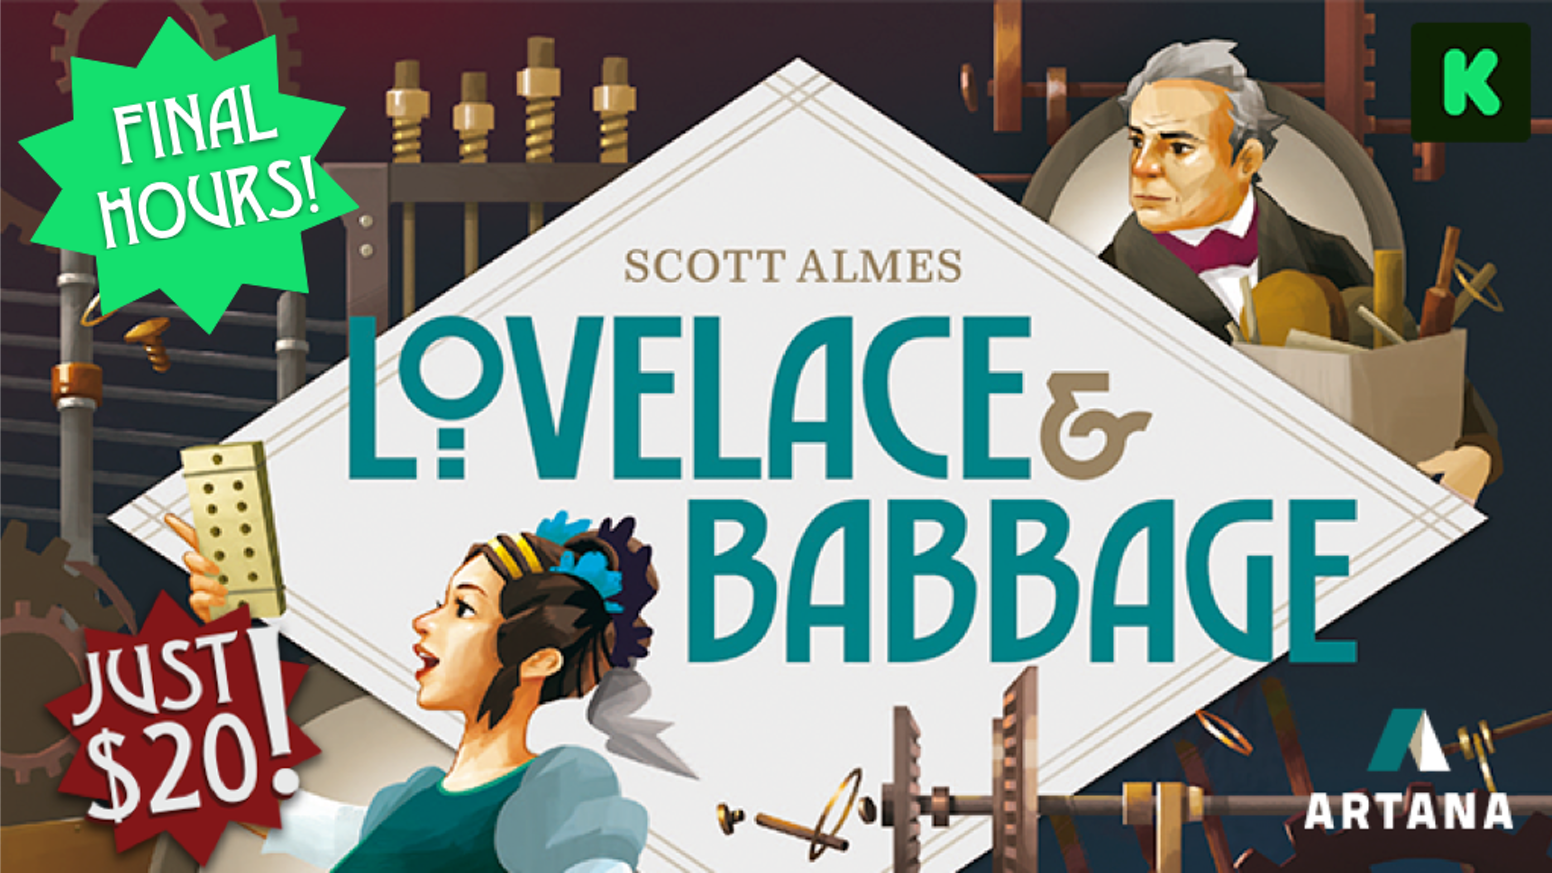 By the Tiny Epic series designer, a clever filler game that unlocks the dawn of computing with pioneers Ada Lovelace & Charles Babbage!